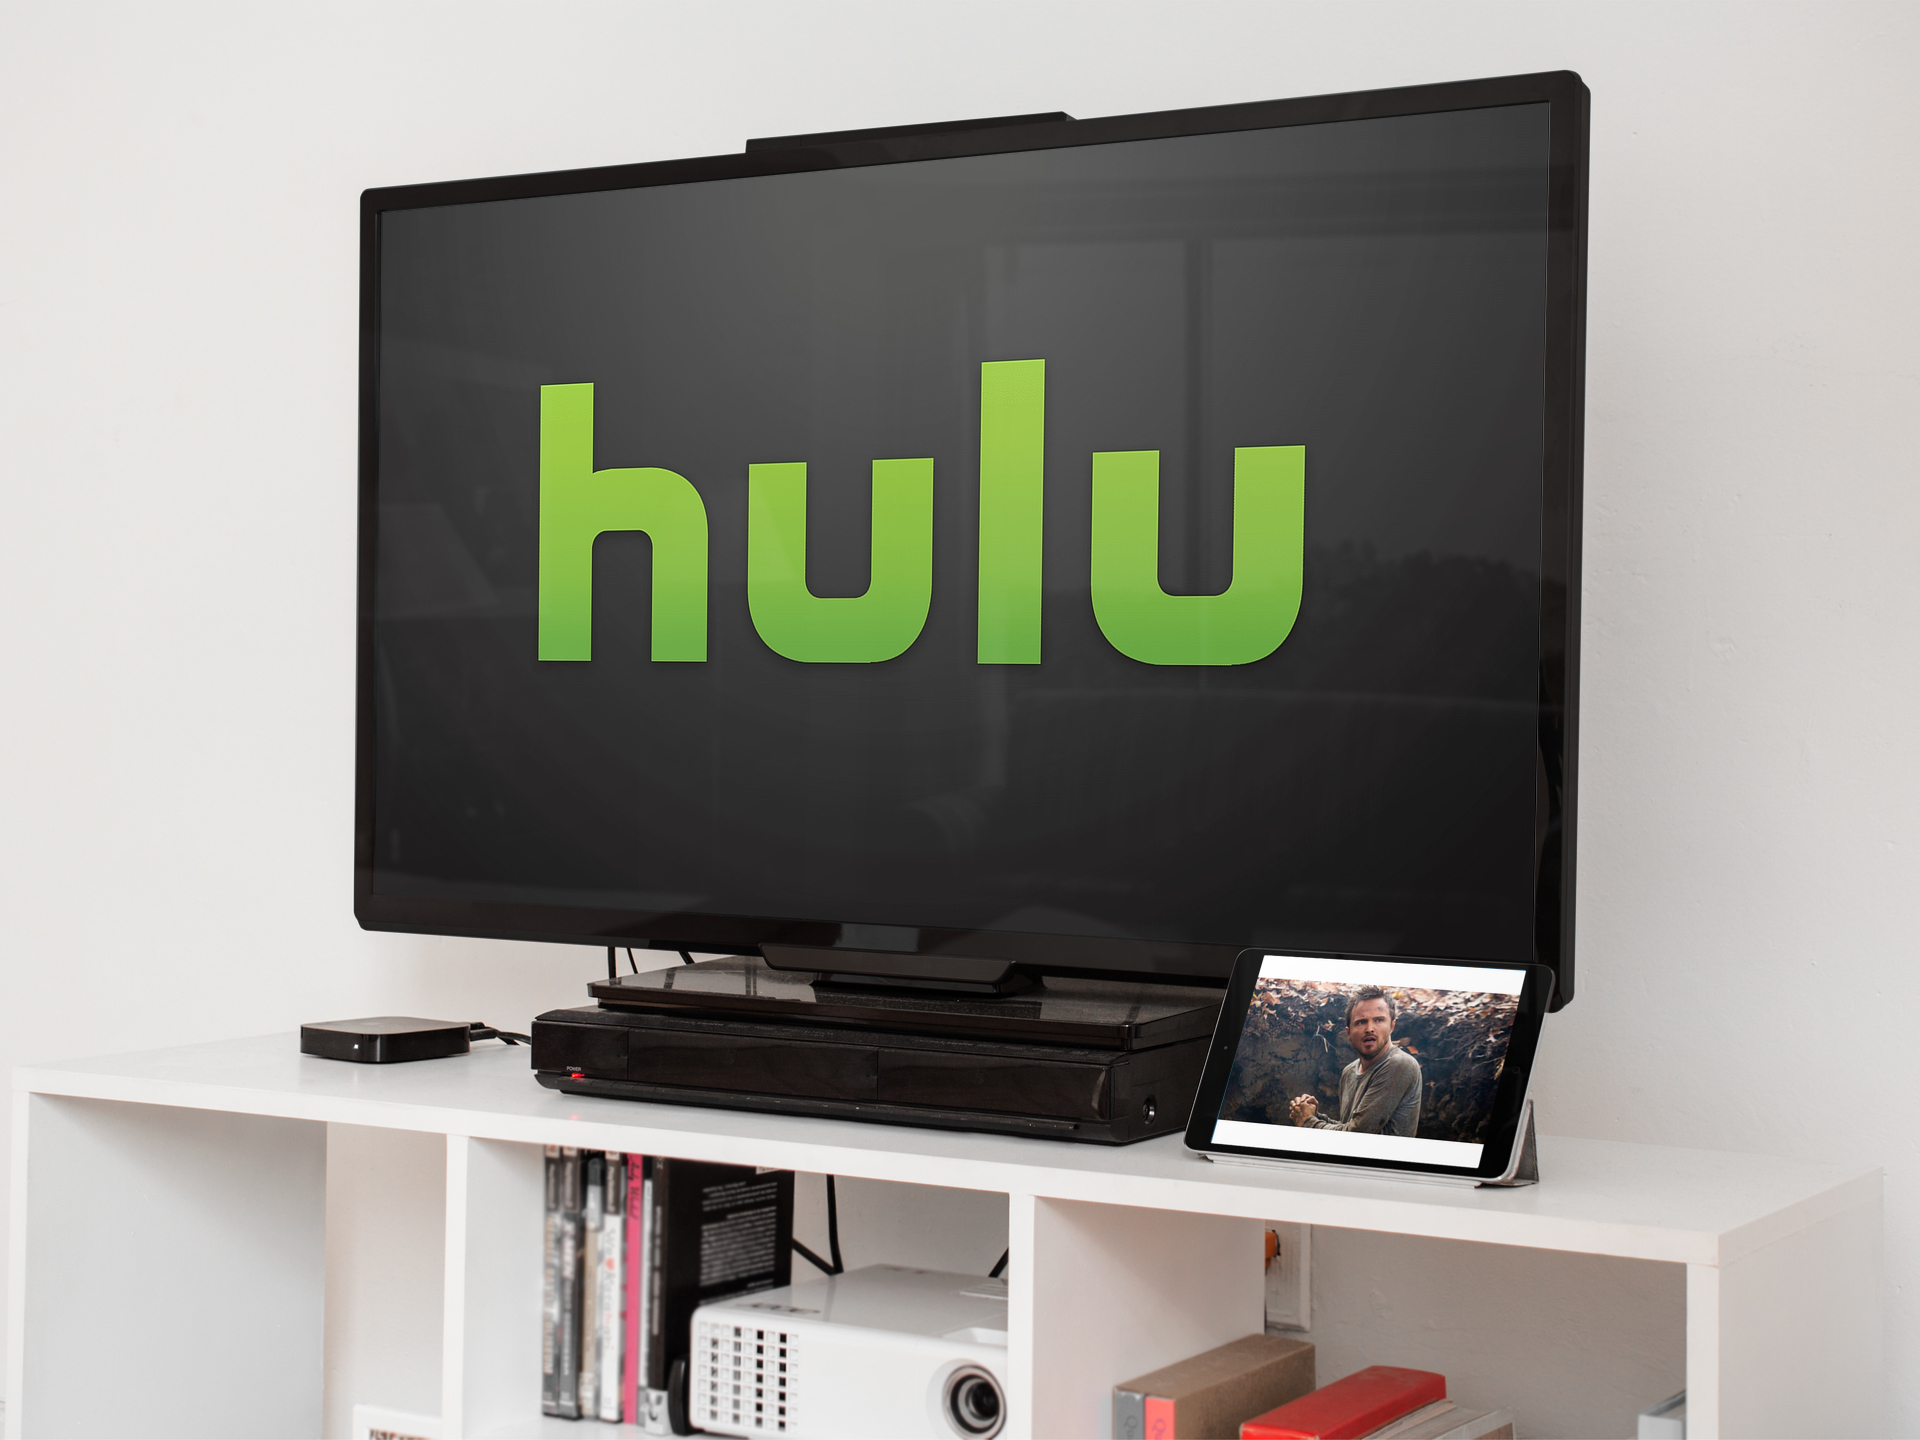 This Week in Tech: The Big Hulu TV Tease, Pandora Premium and More